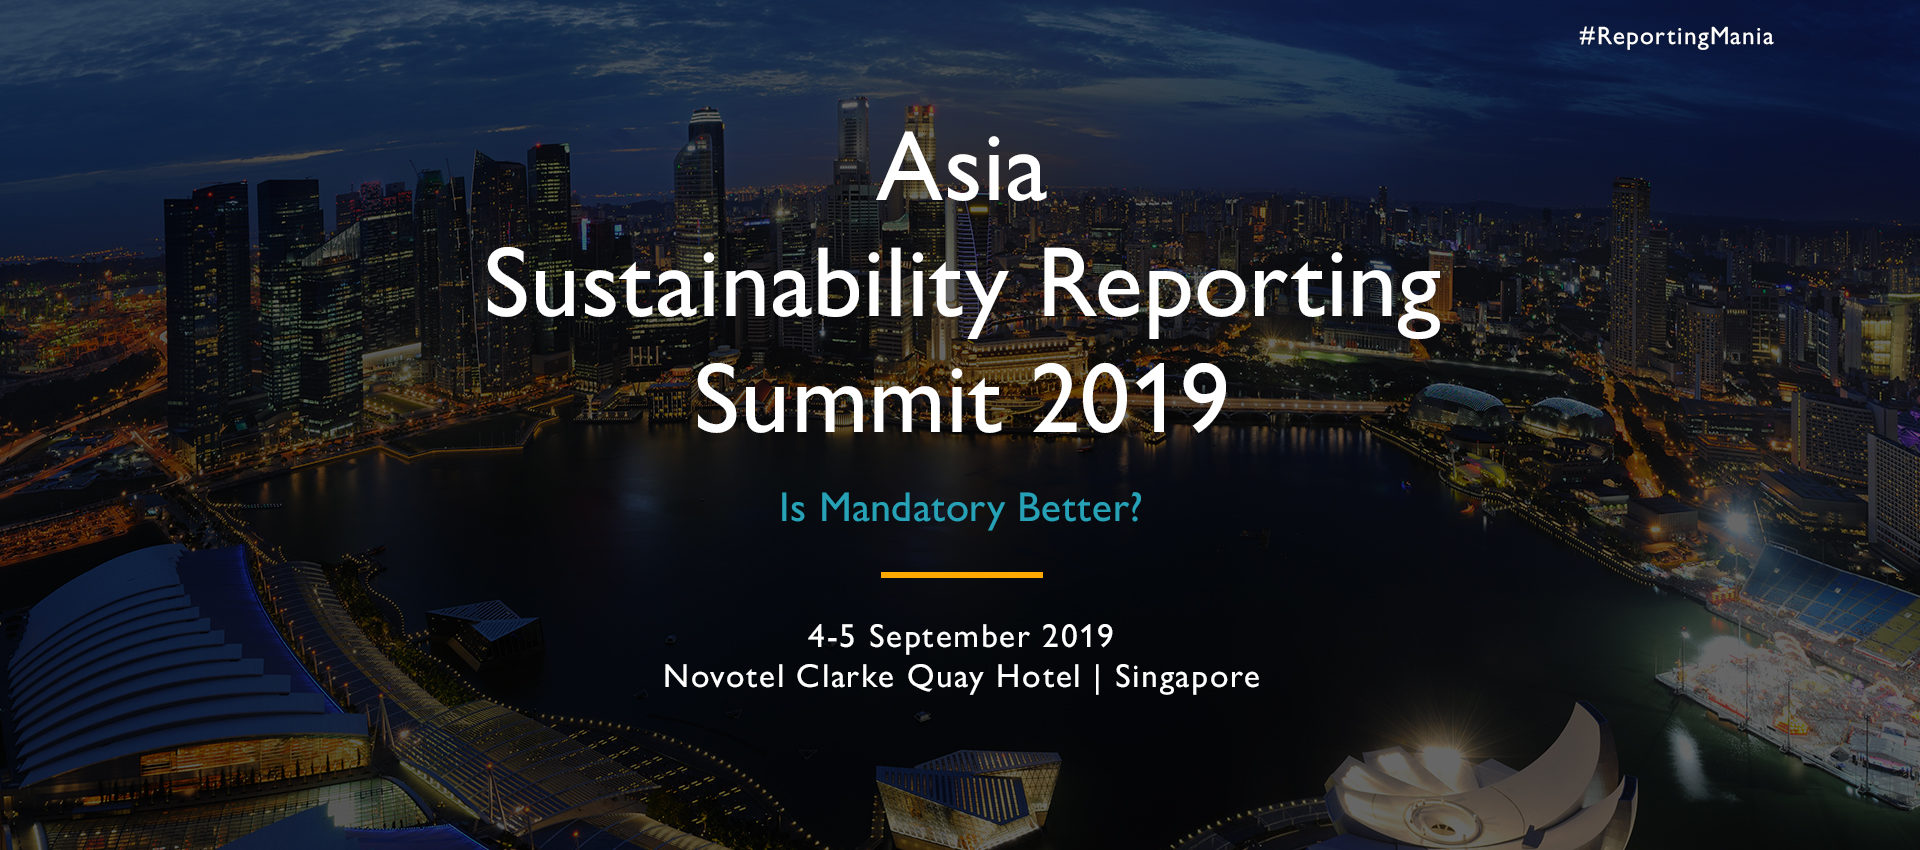 Meet Asia's Sustainability Reporting Leaders and Stakeholders - Asia